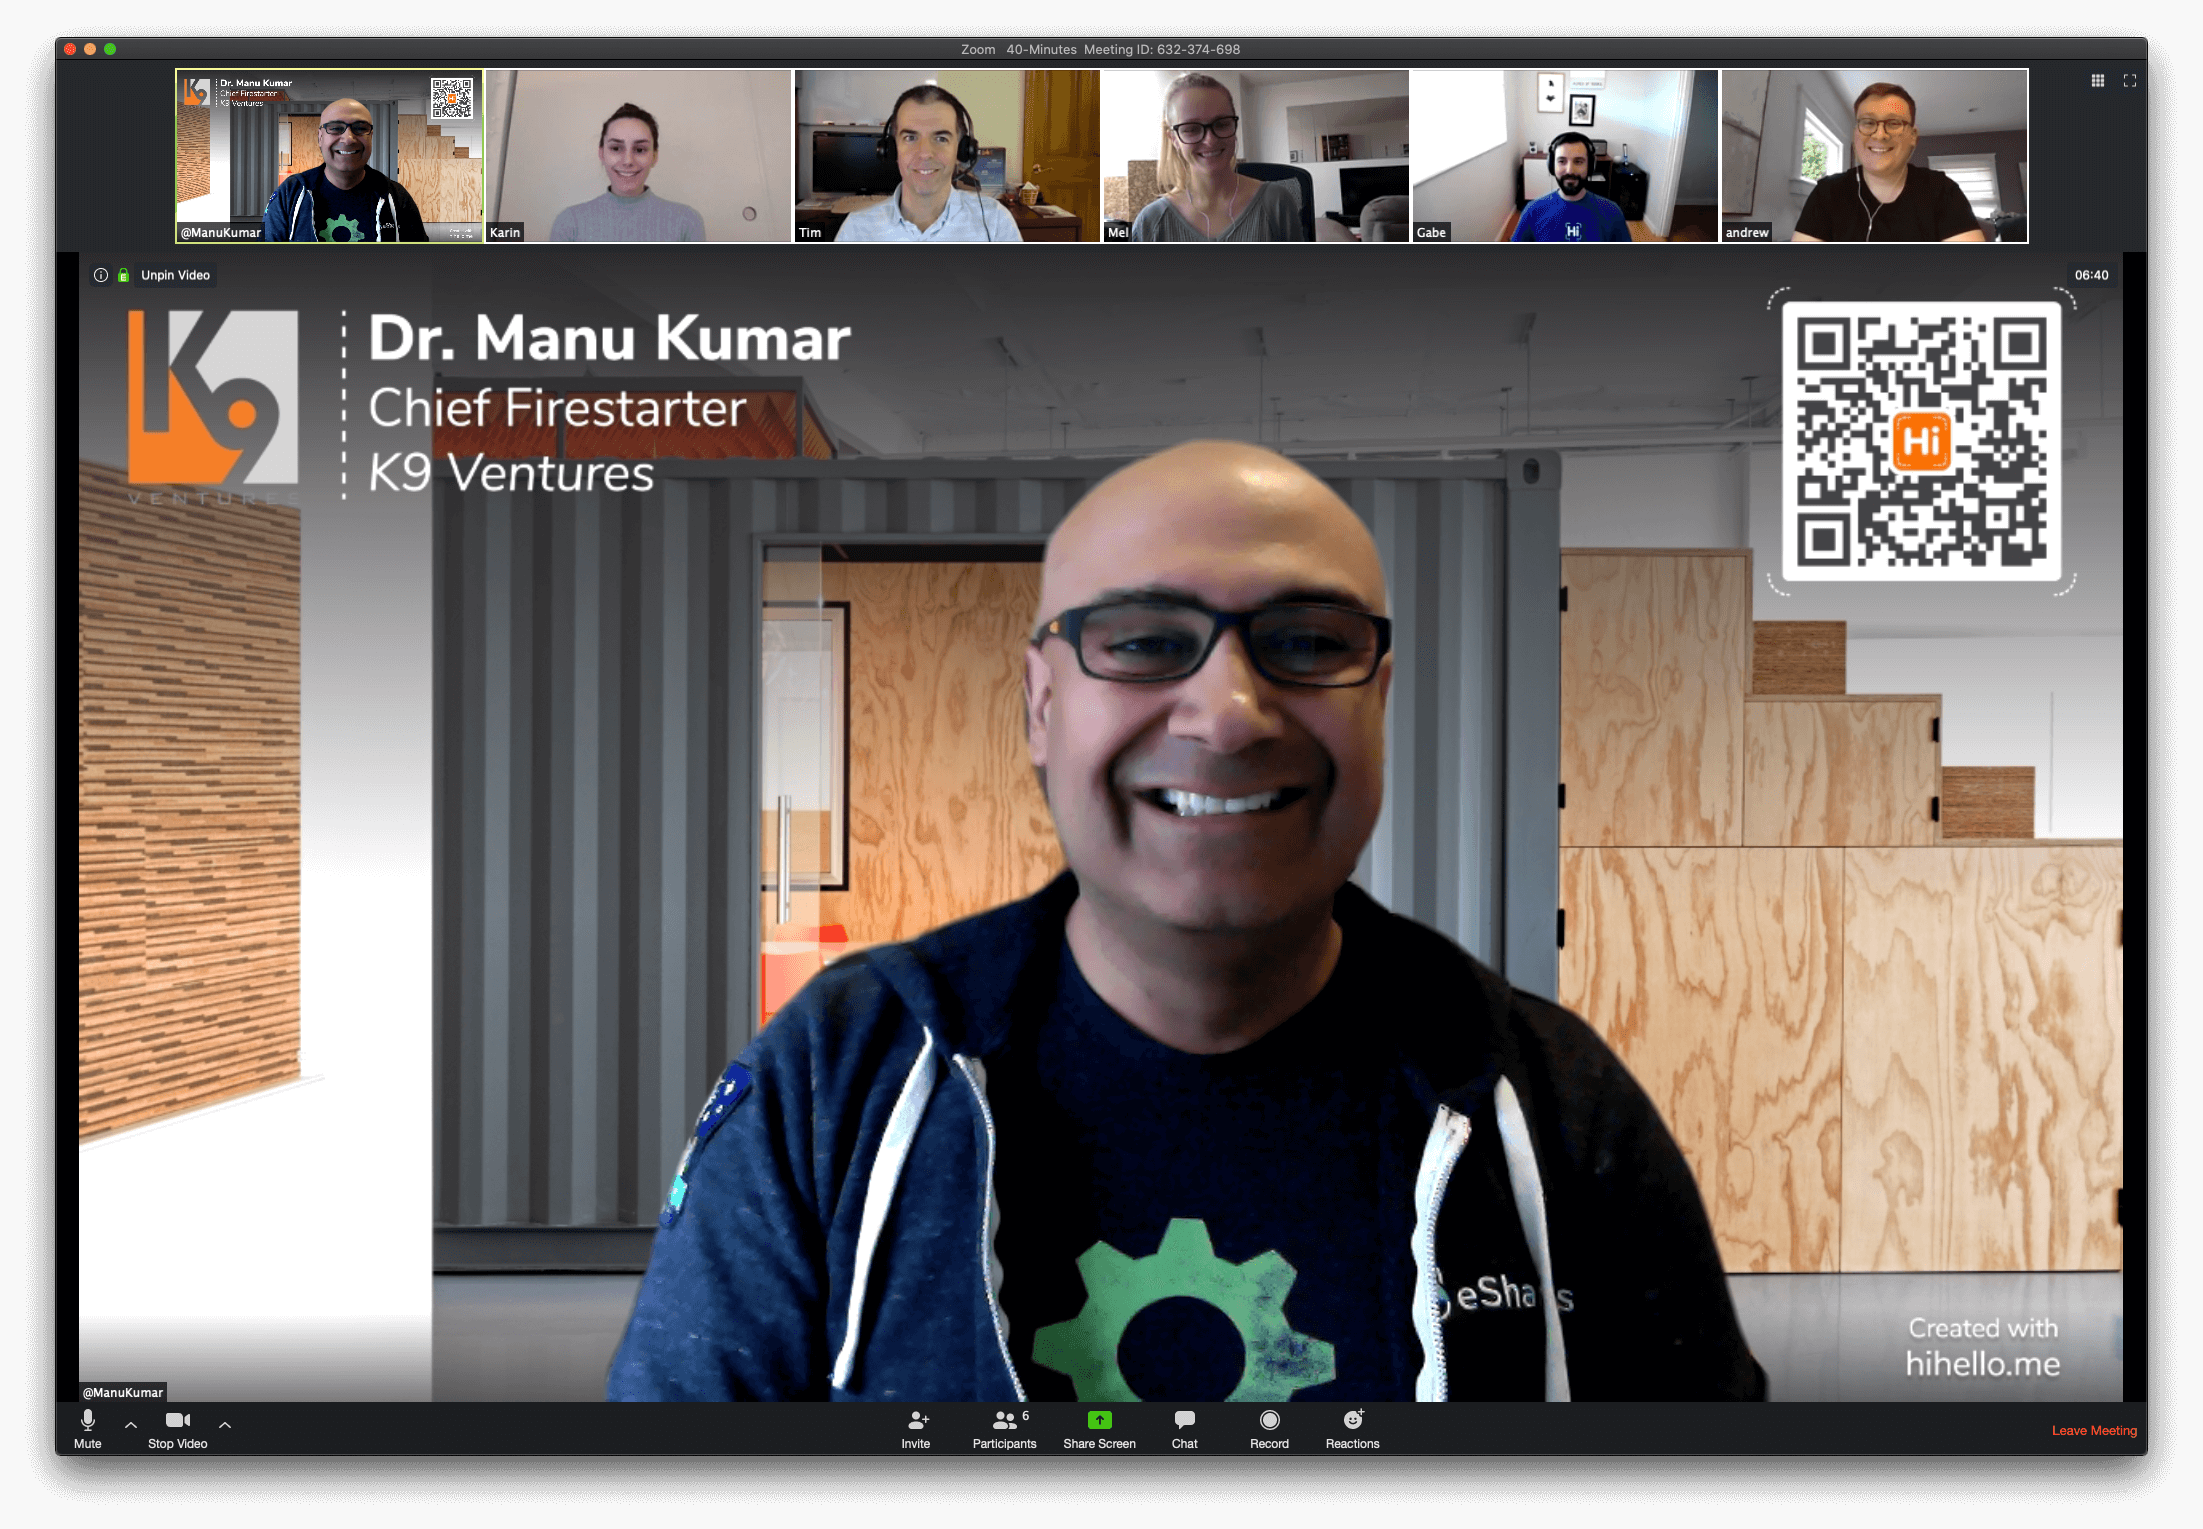 Zoom meeting with a HiHello virtual background.